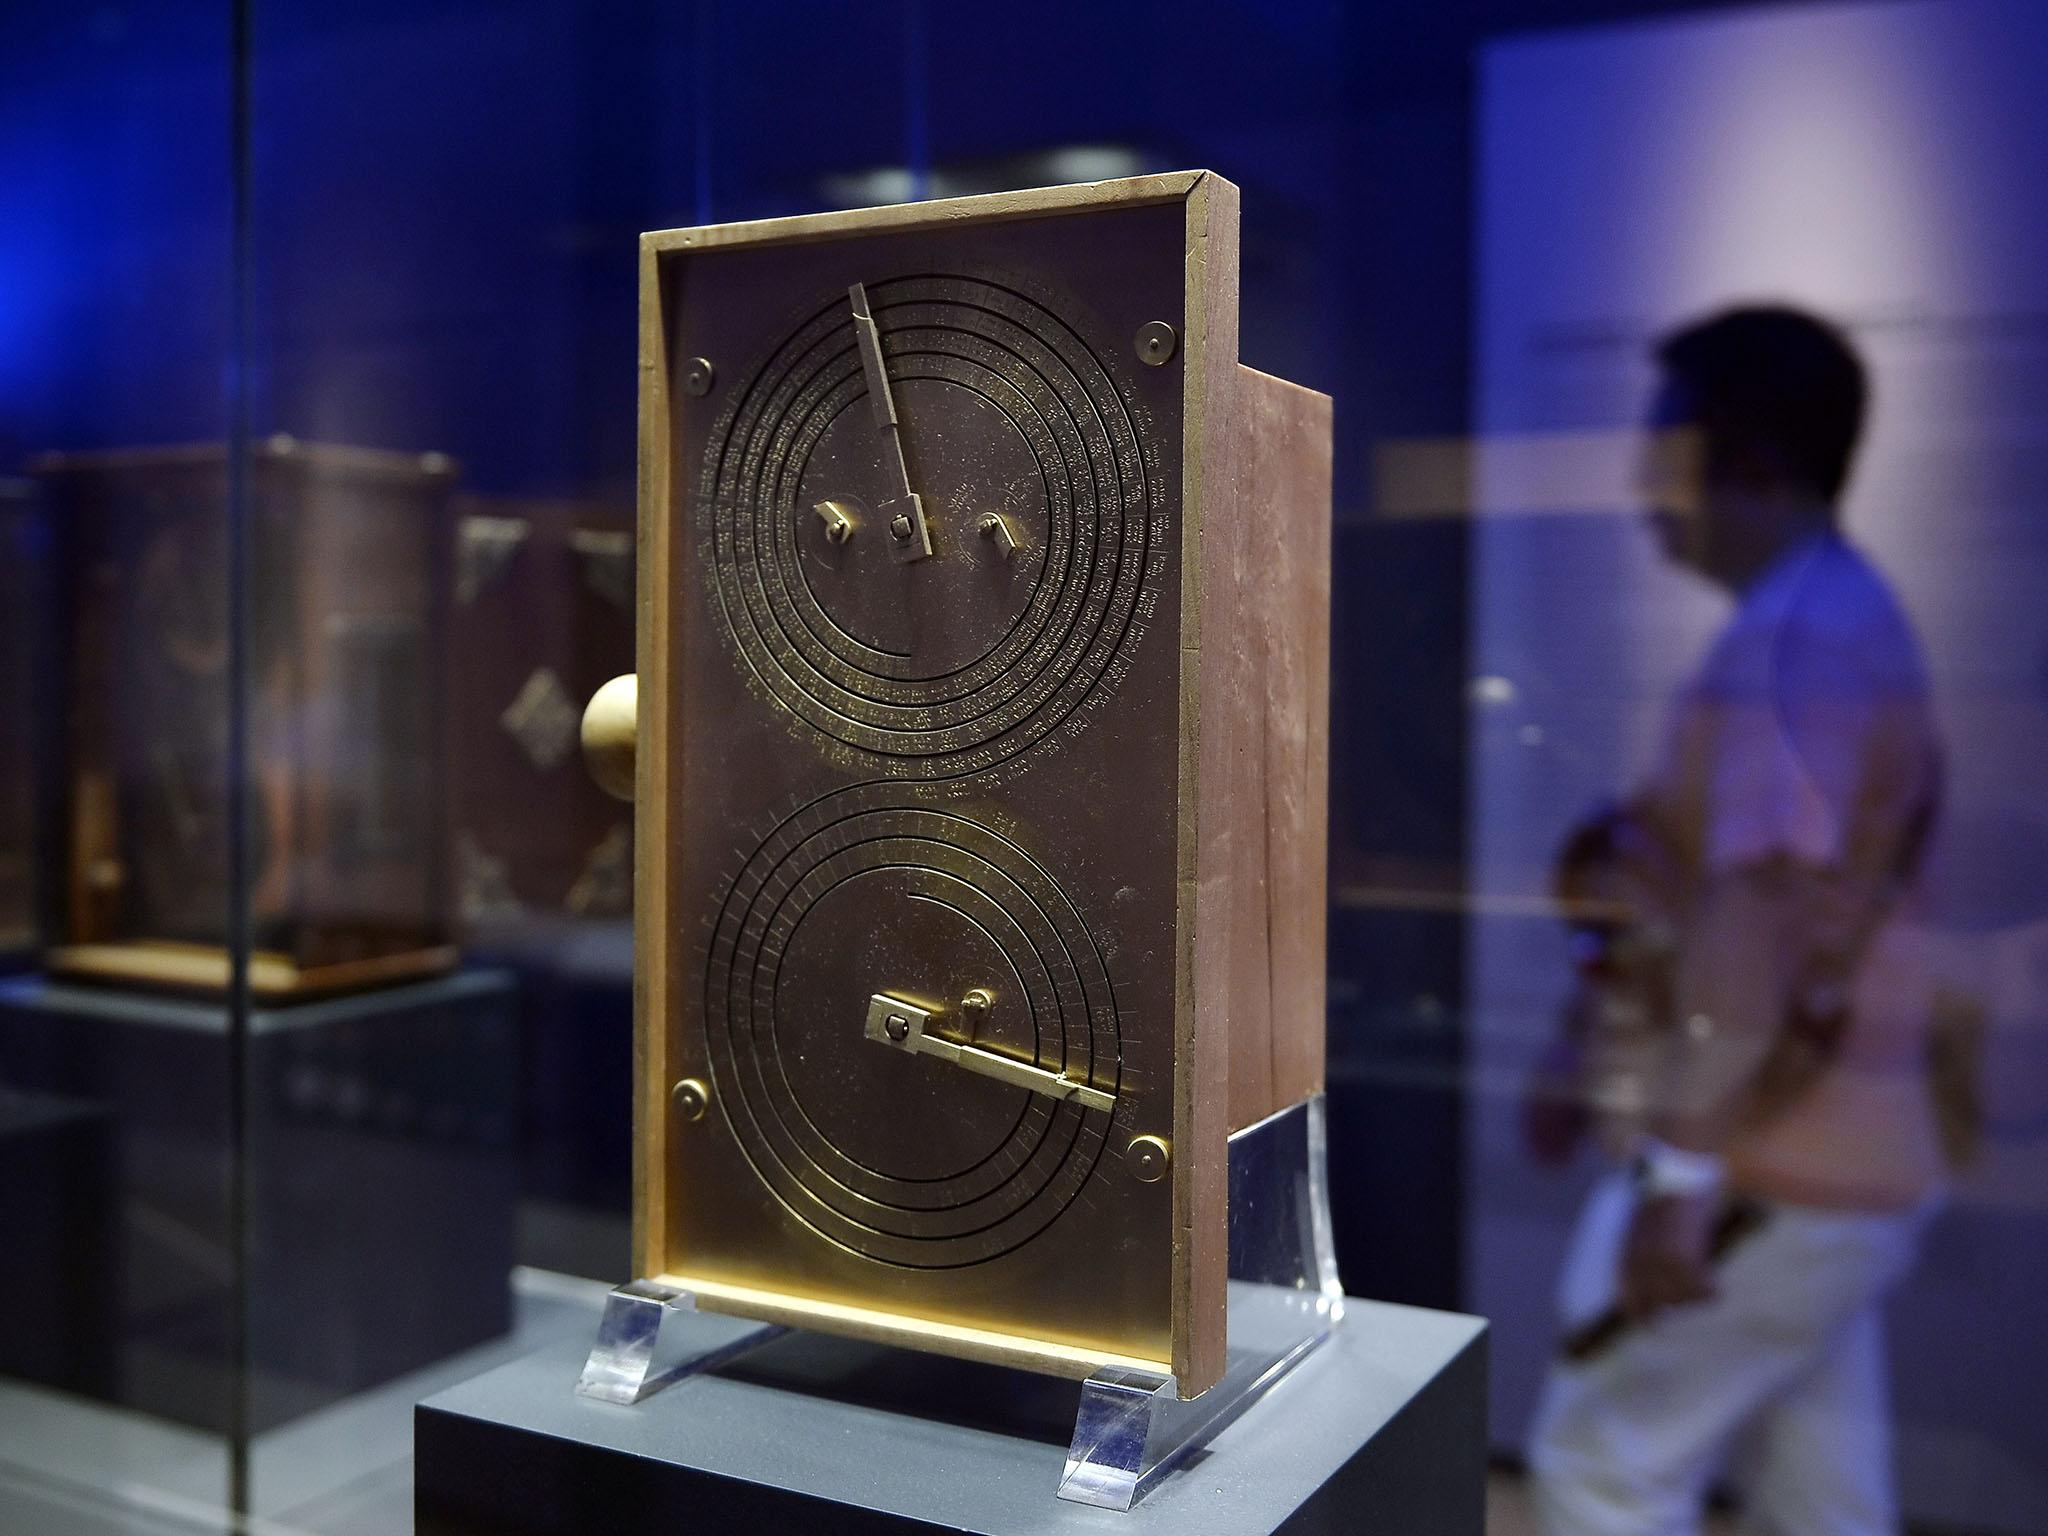 World's oldest computer from 60BC used to read stars and tell future, study reveals